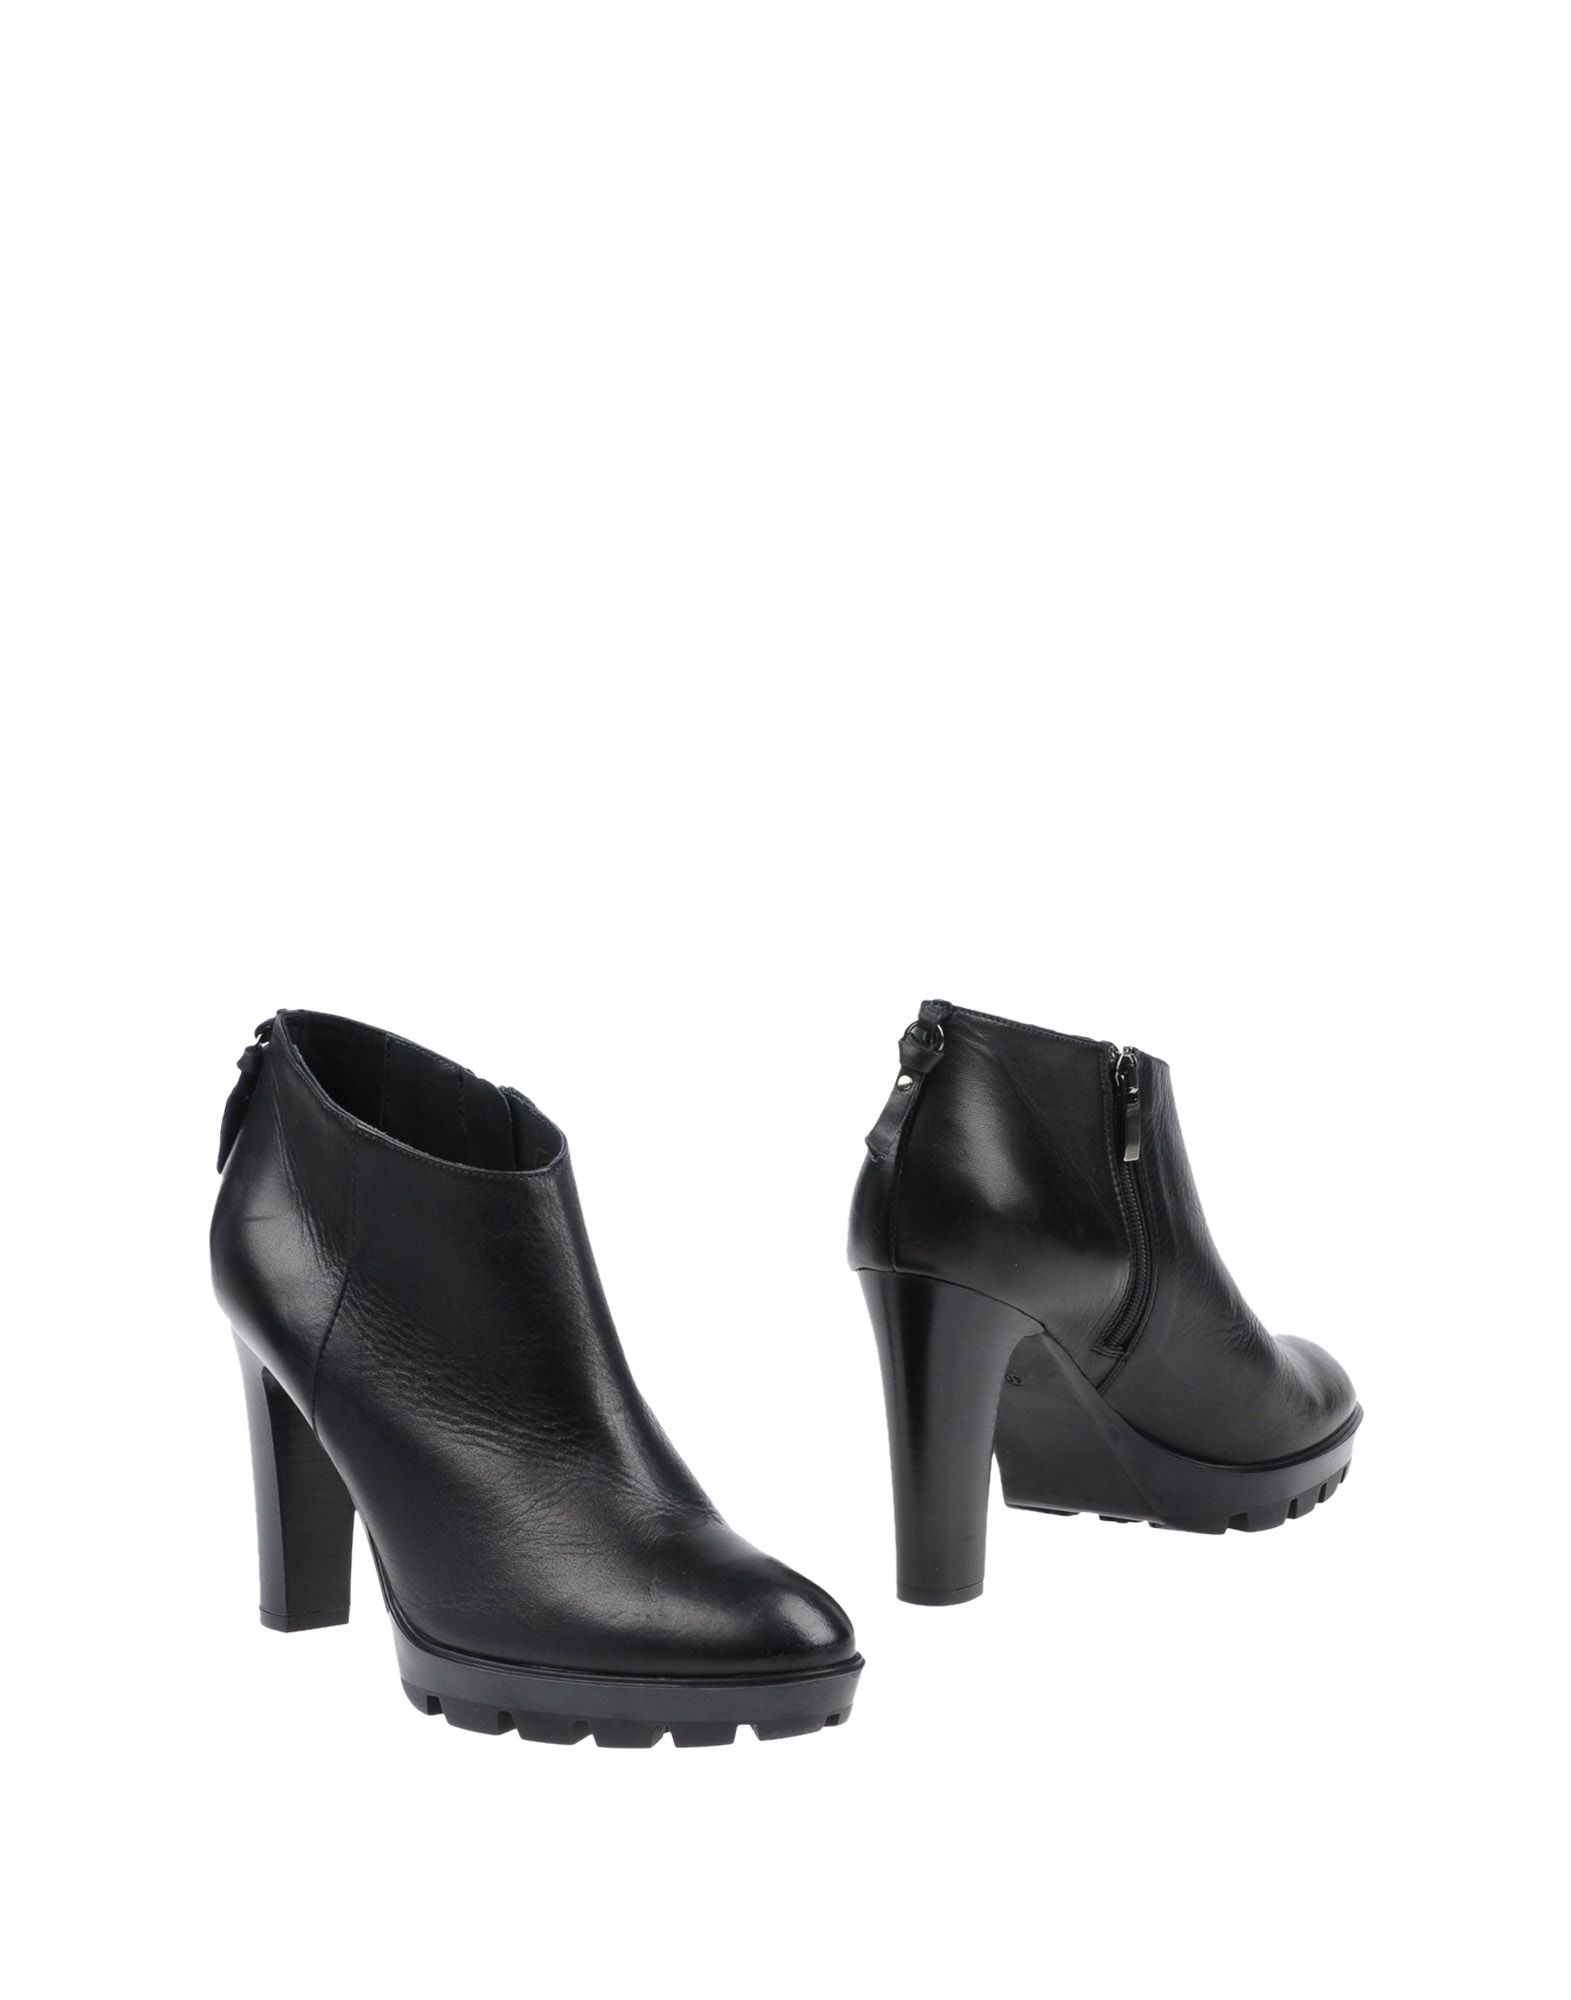 P.A.R.O.S.H. Ankle Boot Boot Boot - Women P.A.R.O.S.H. Ankle Boots online on  United Kingdom - 11305476XK f865bd